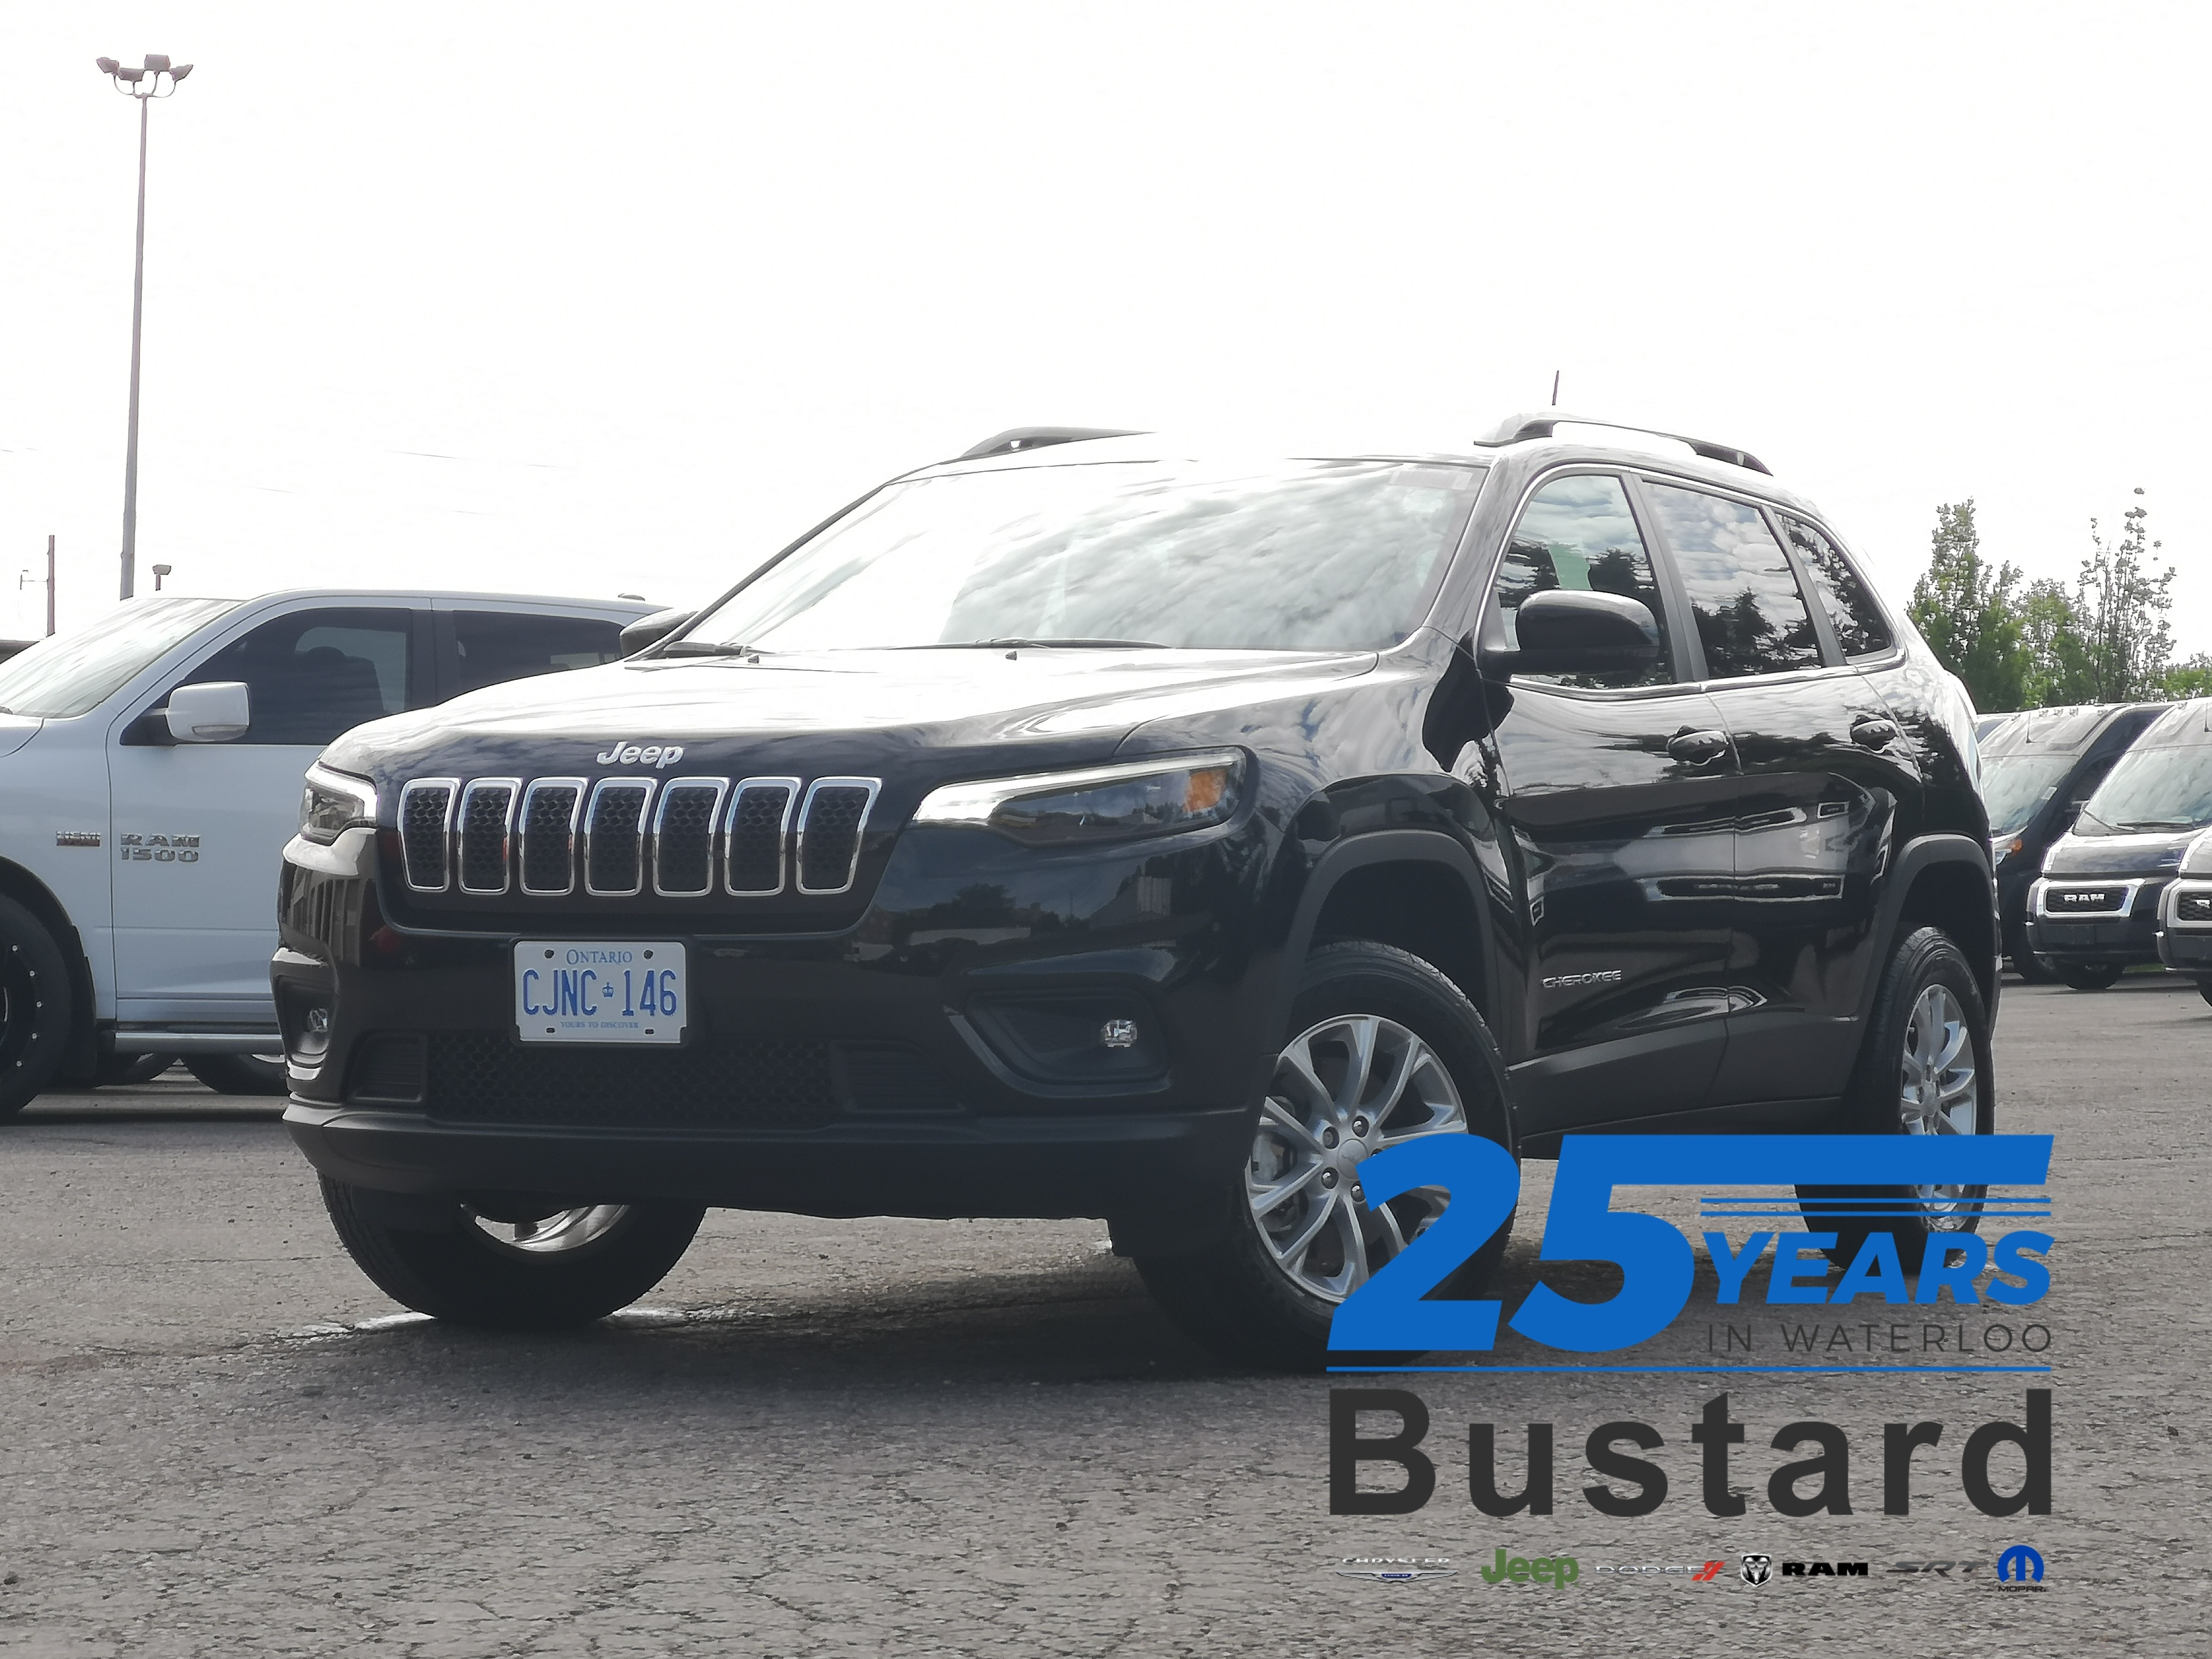 Bustard Chrysler Waterloo >> Featured Used Vehicles at Bustard Chrysler, Google's Top ...